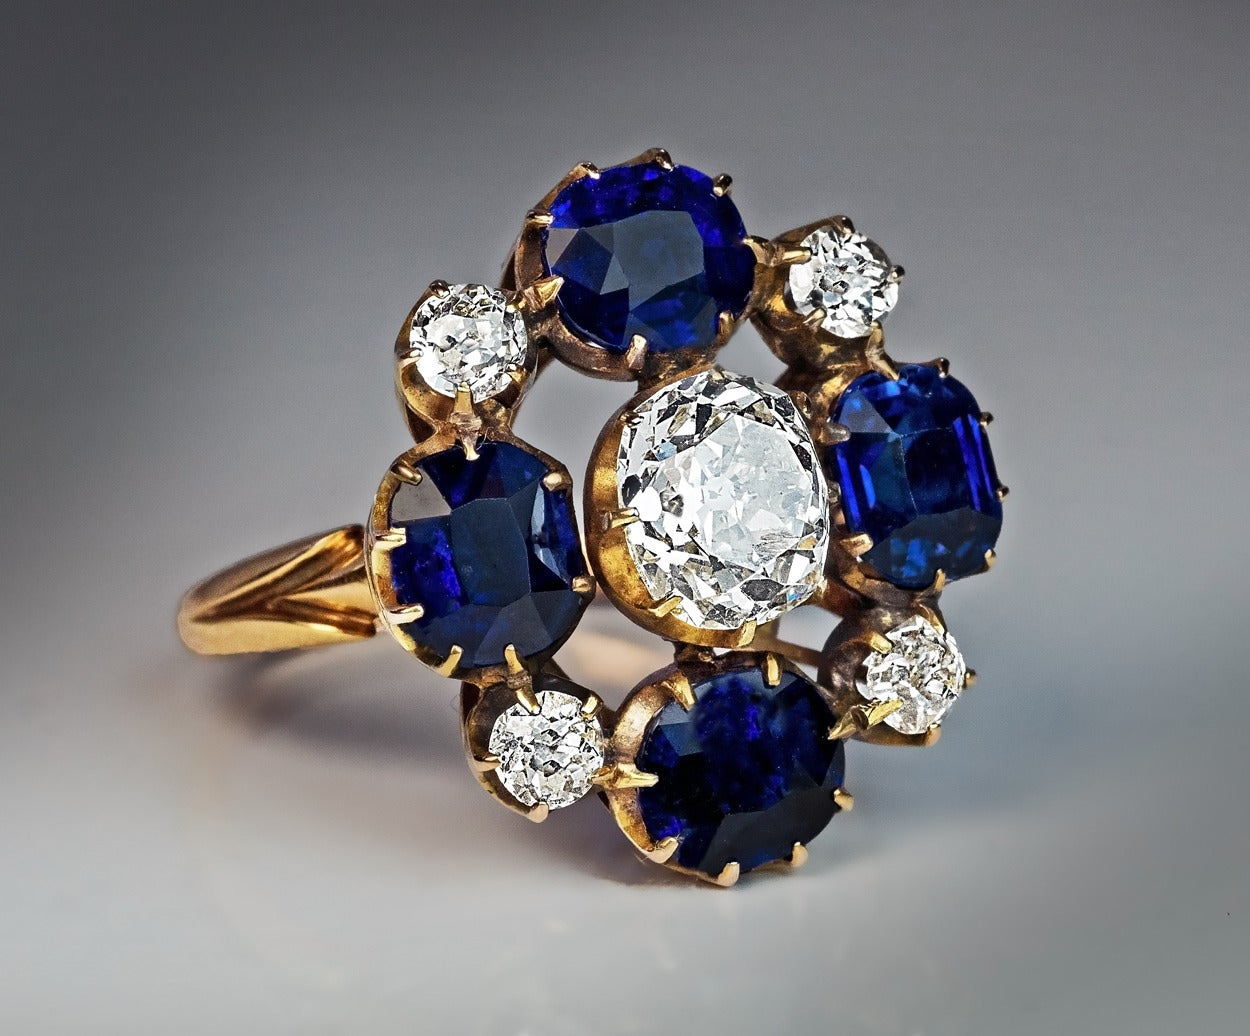 Russian Imperial Era Antique Sapphire Diamond Gold Cluster Ring 6